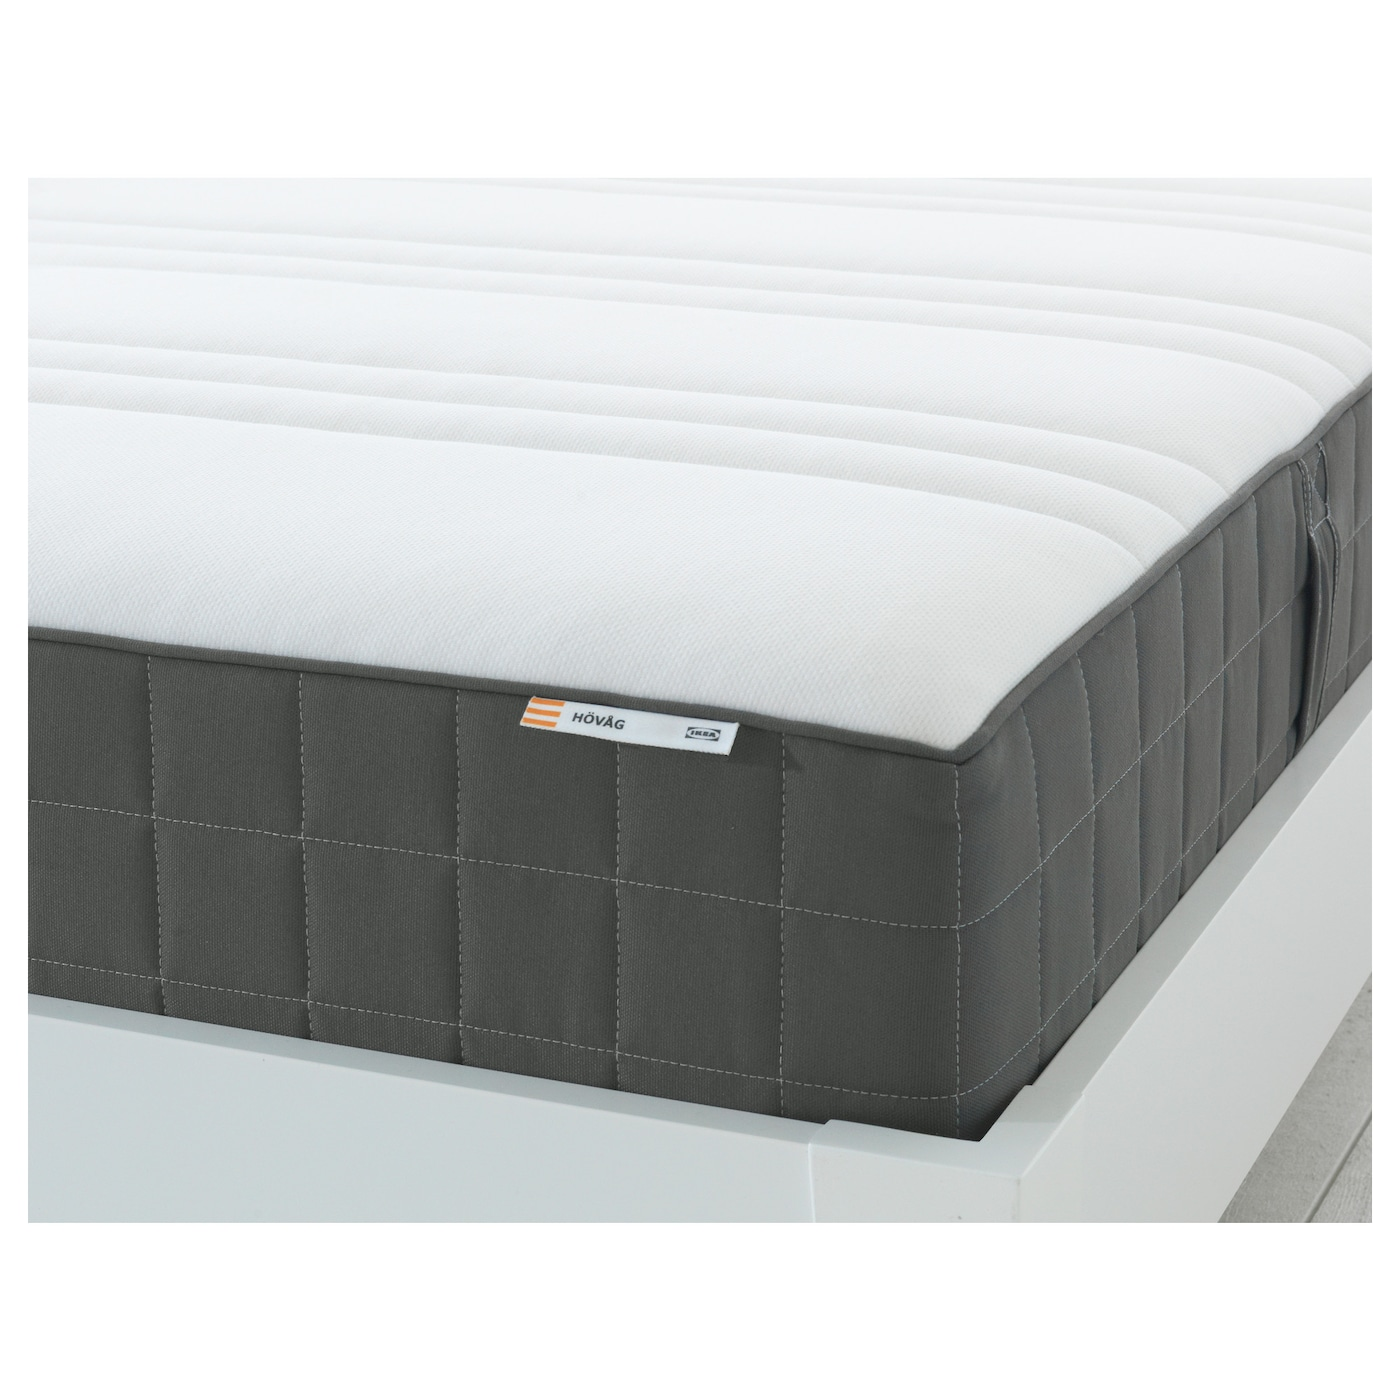 spring mattresses in mattress review and reviews present we will bedroom this ikea the haugesund product